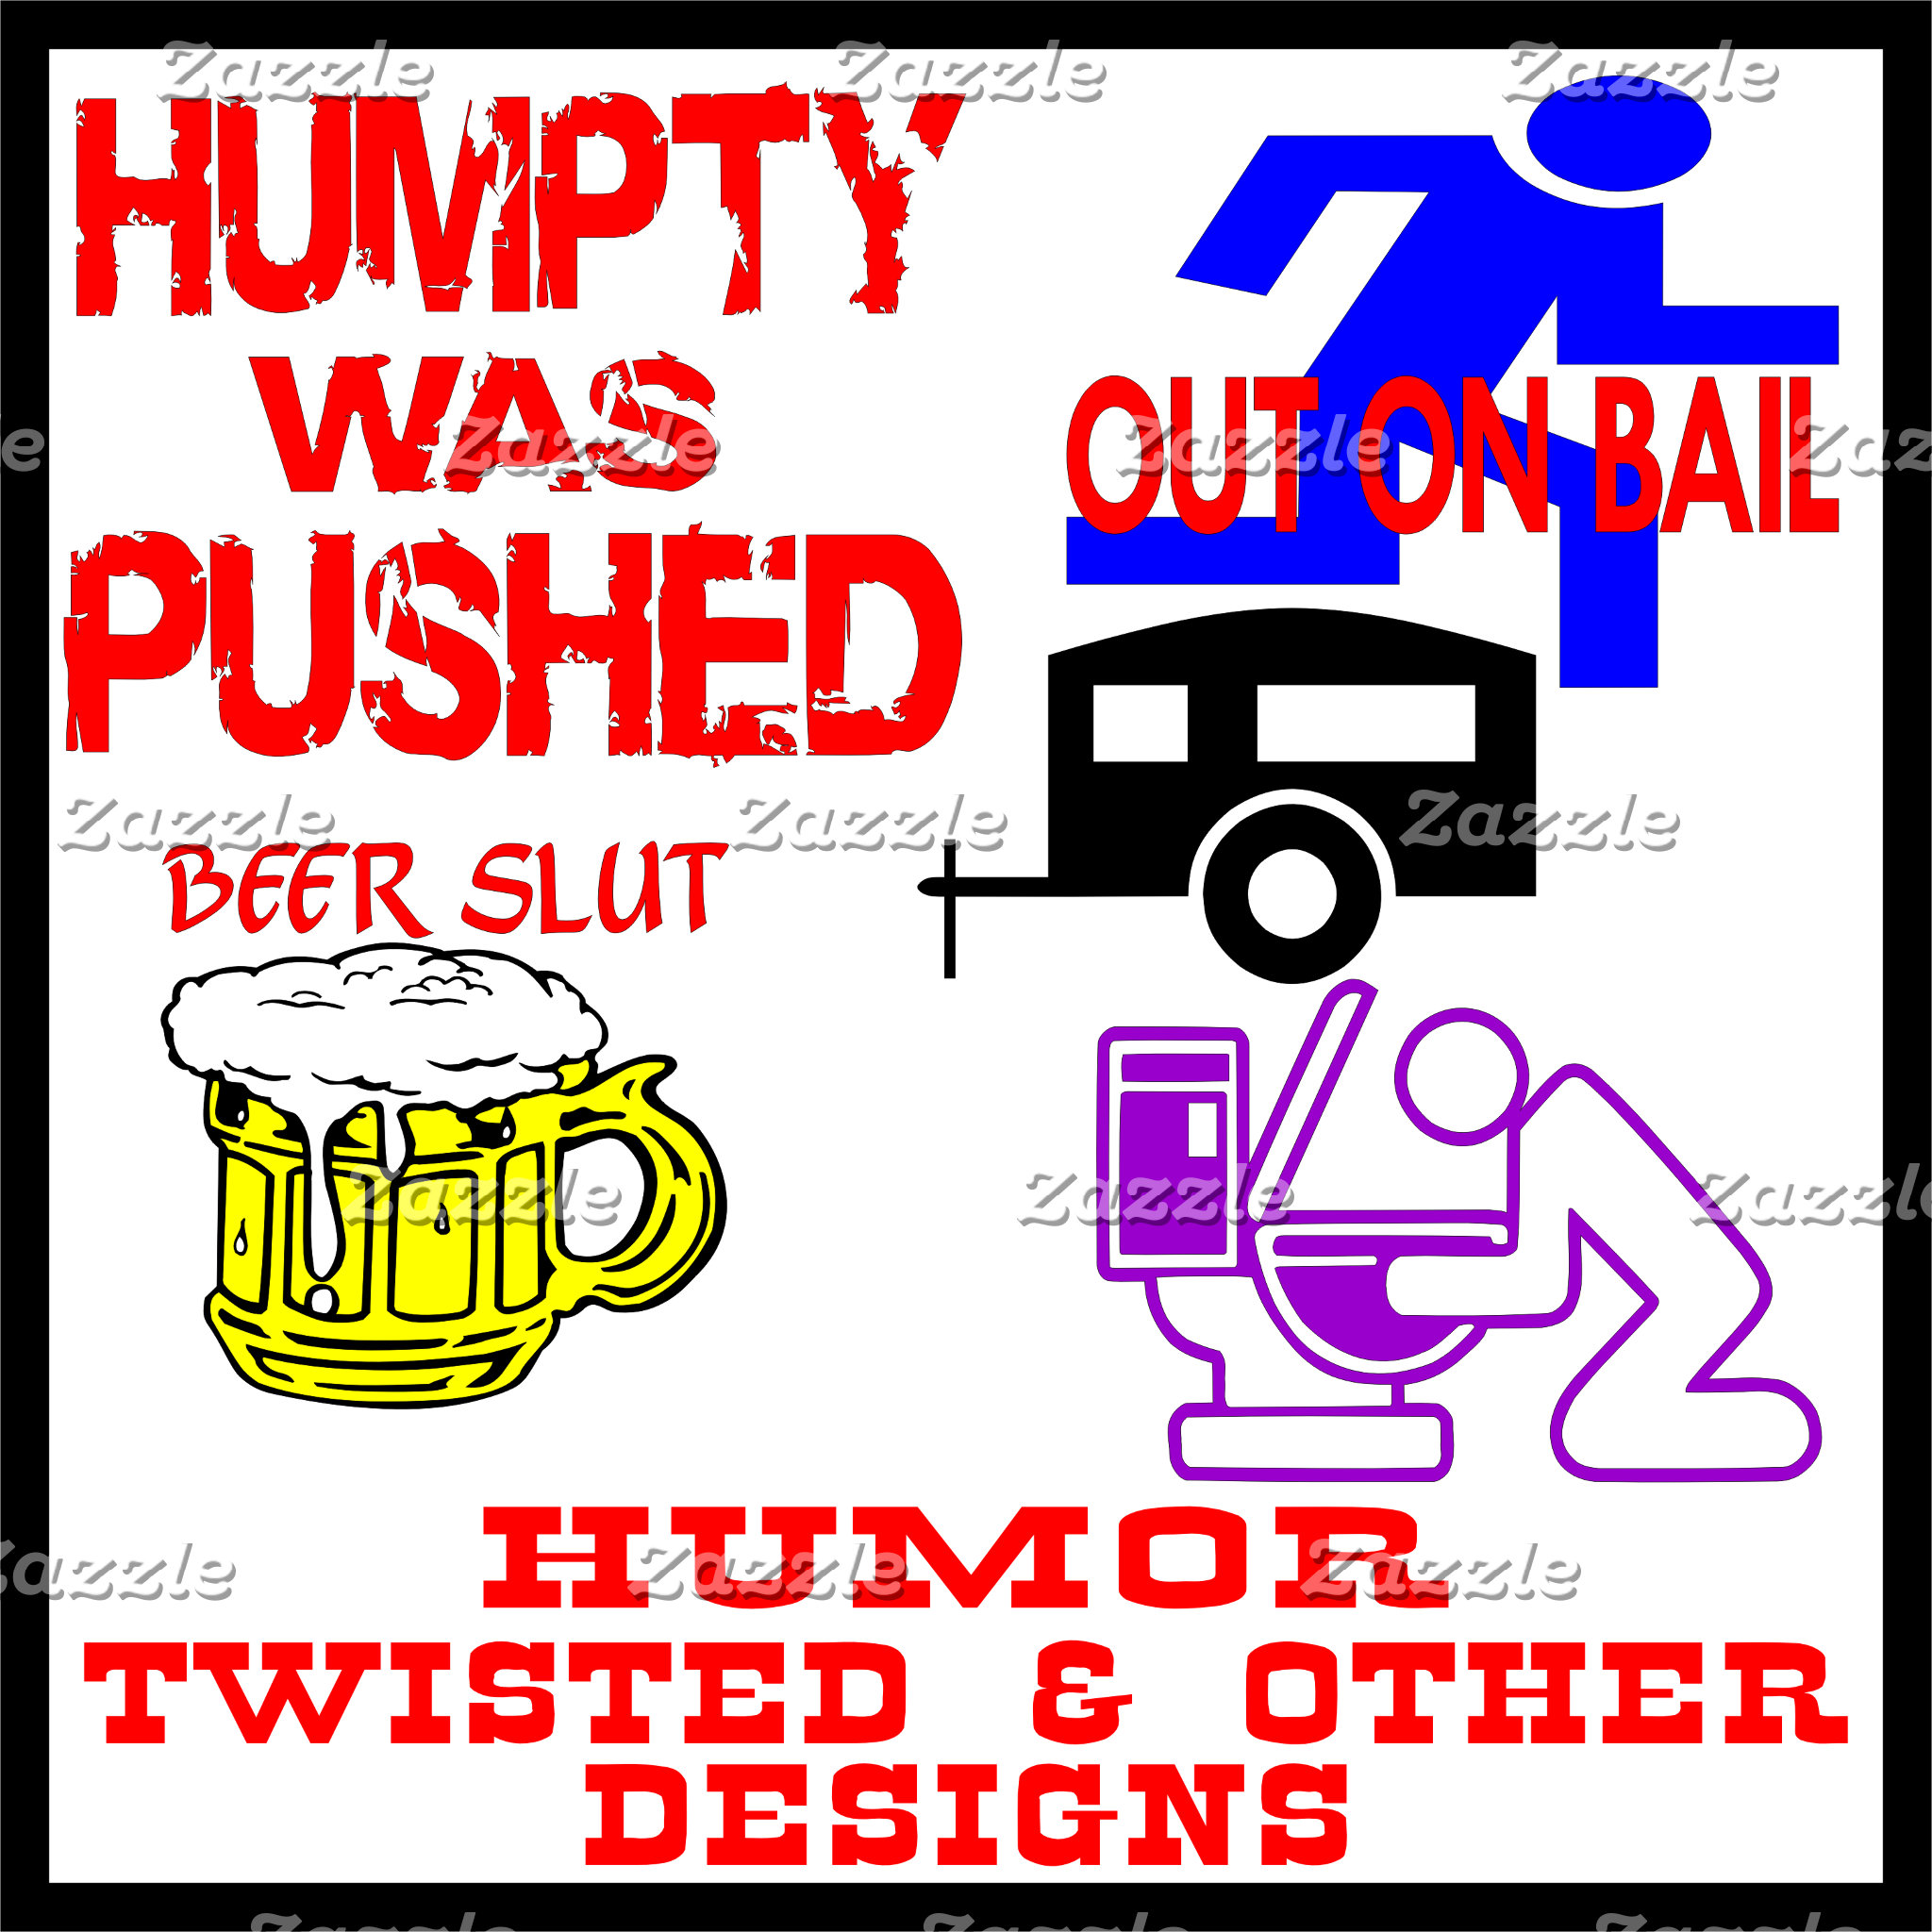 Humor - Twisted & Other